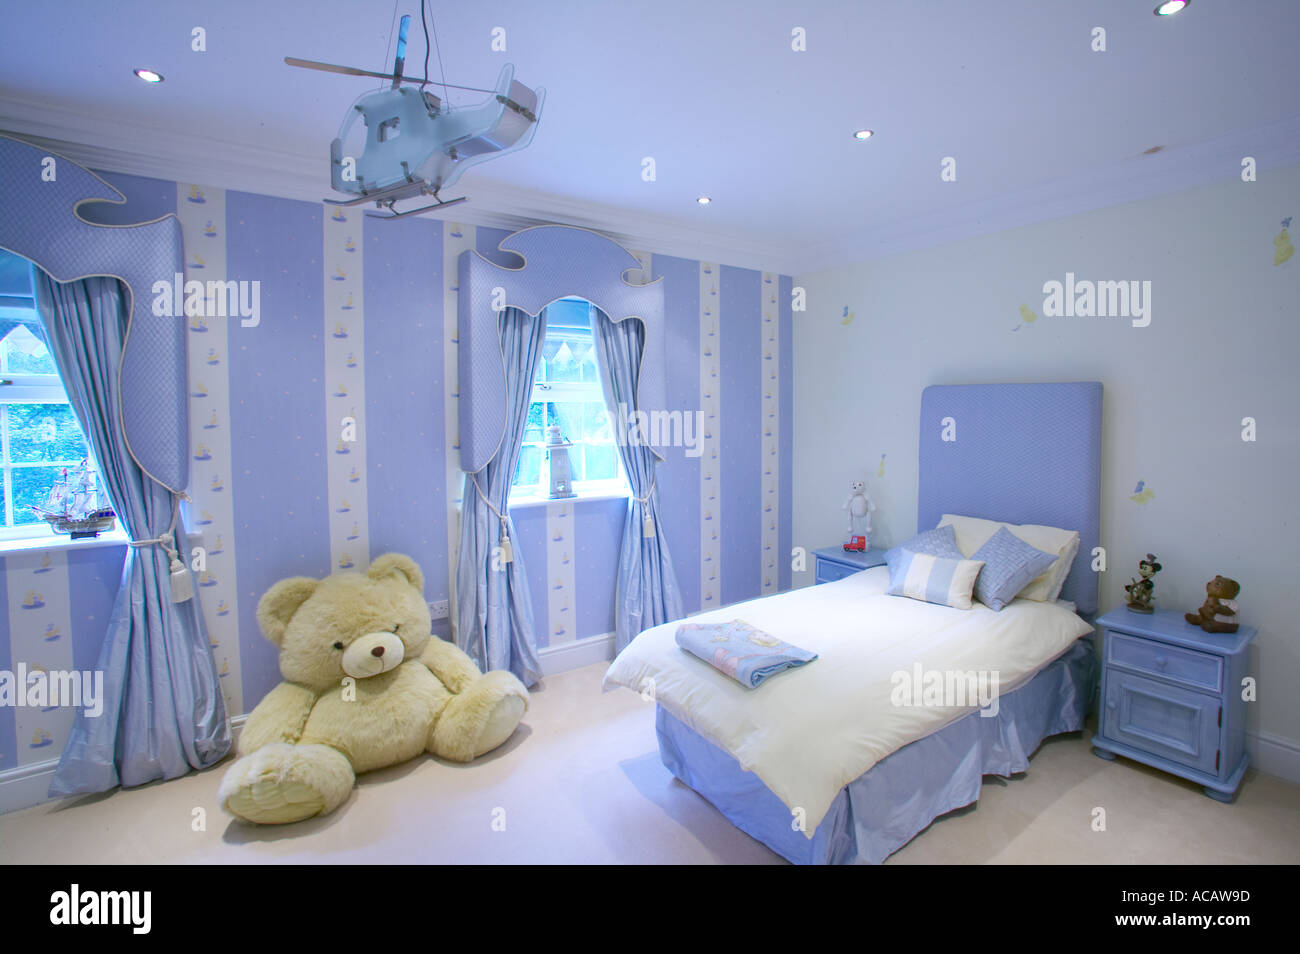 Stock Photo   childs bedroom of large home with huge teddy bear. Childs Bedroom Of Large Home With Huge Teddy Bear Stock Photo